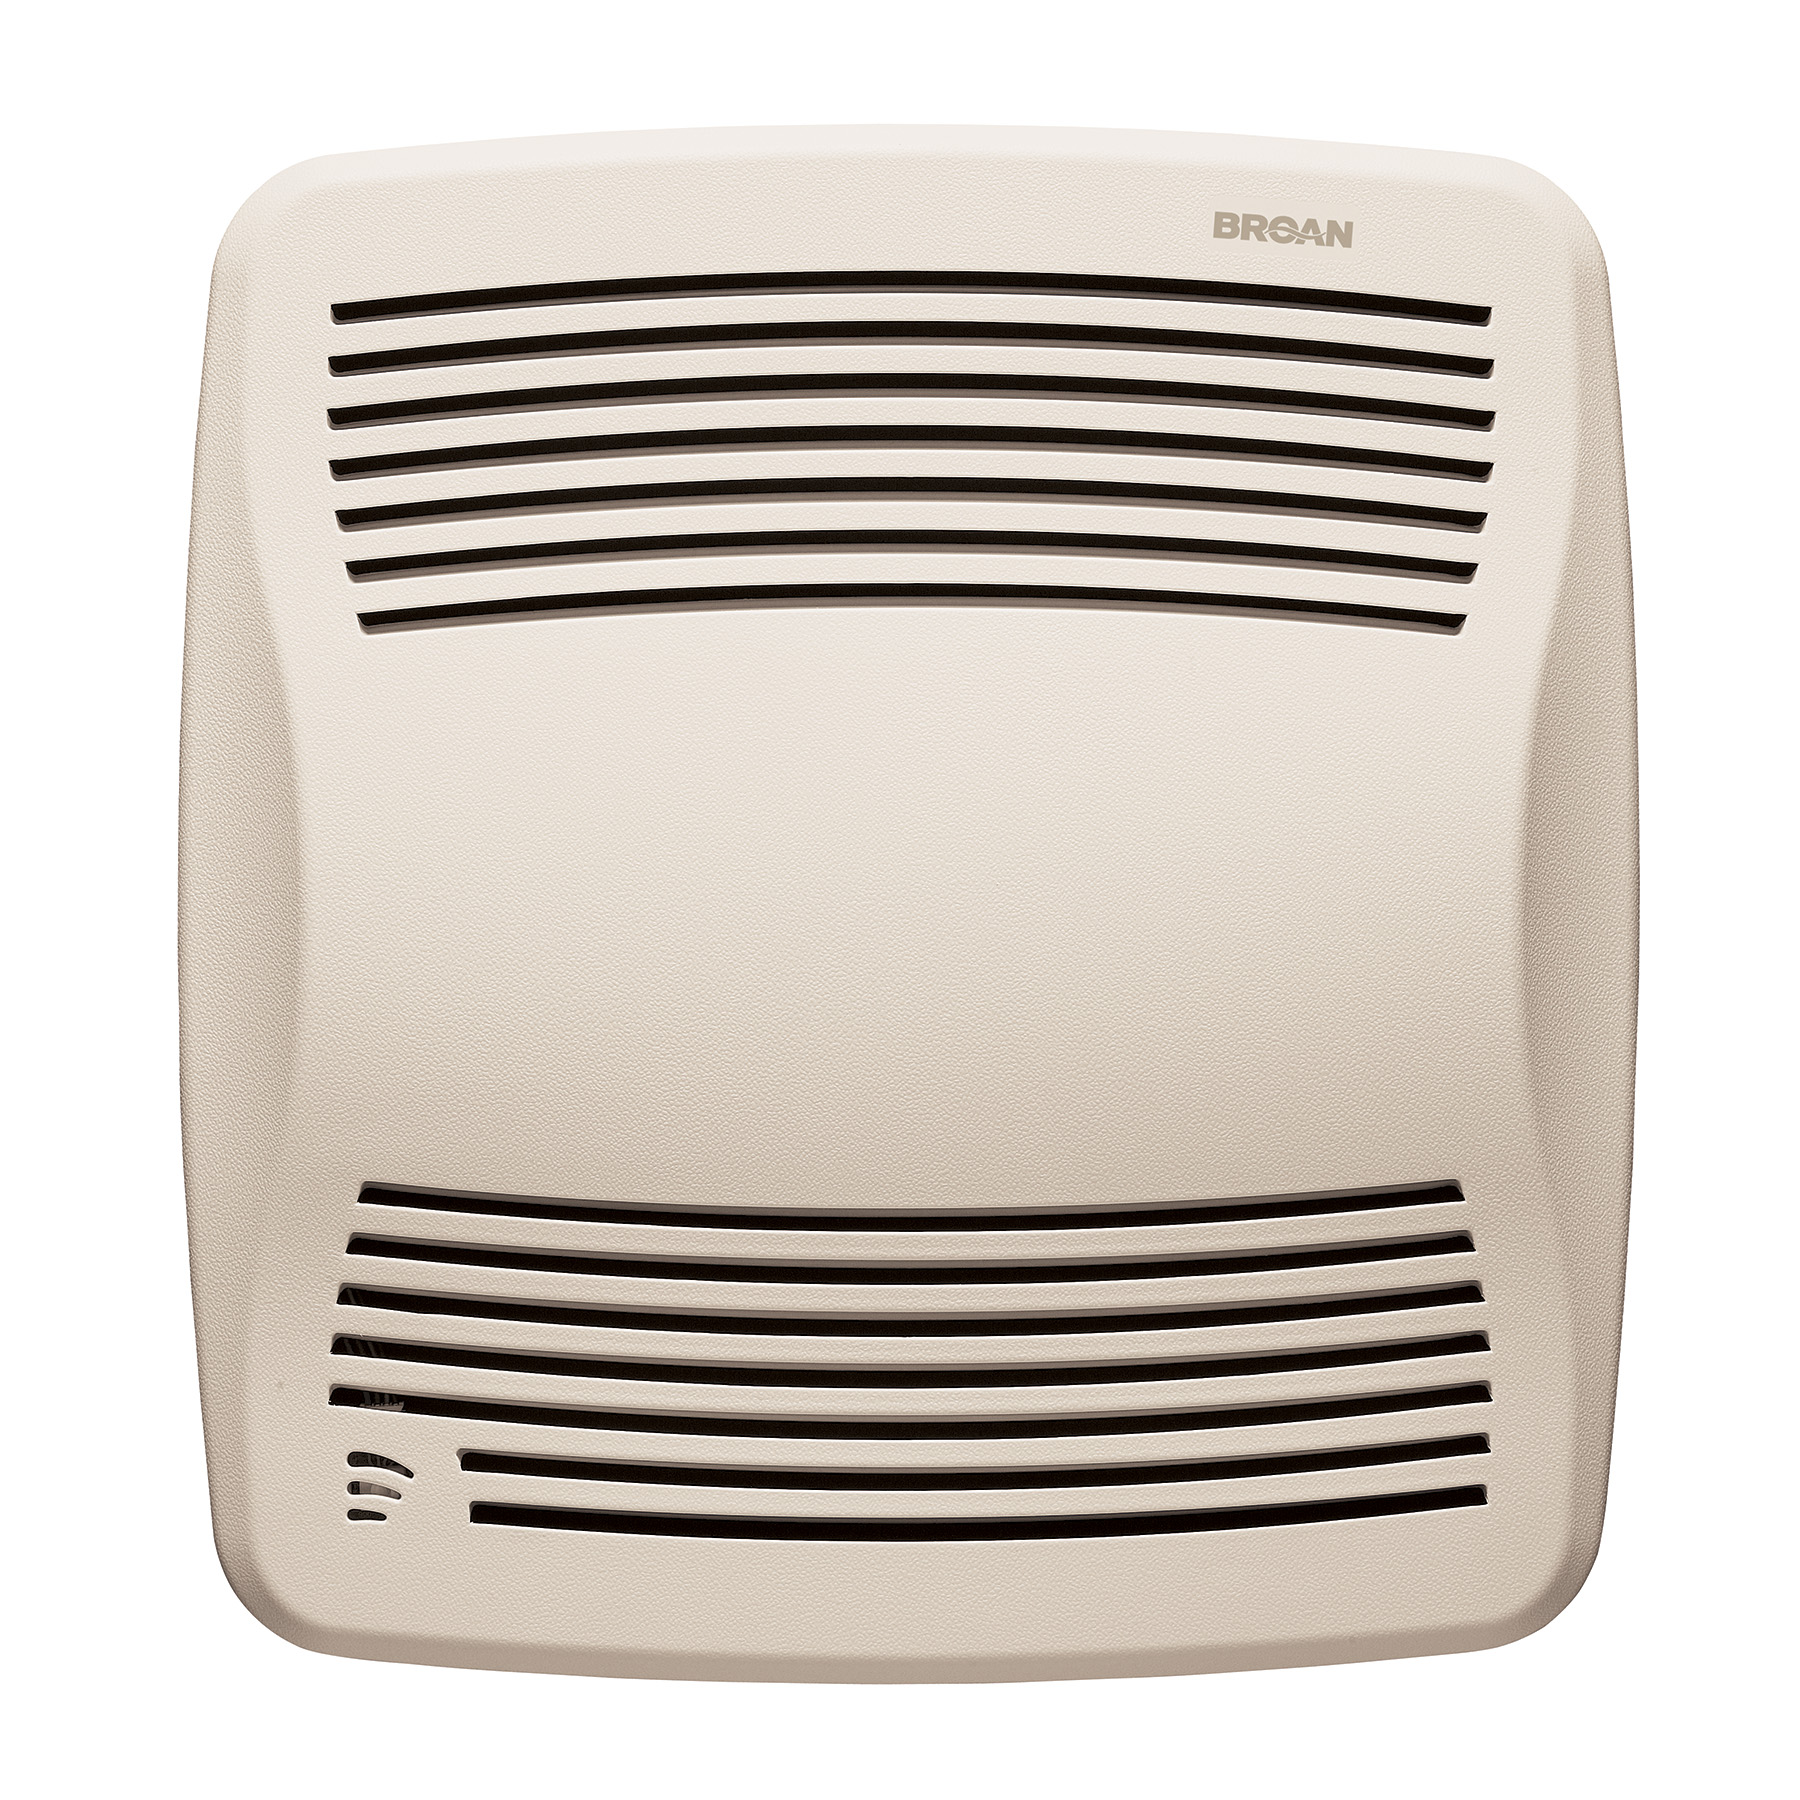 QTXE110S Broan® 110 CFM Humidity Sensing Exhaust Vent Fan w/ White Grille,  ENERGY STAR®Broan-NuTone